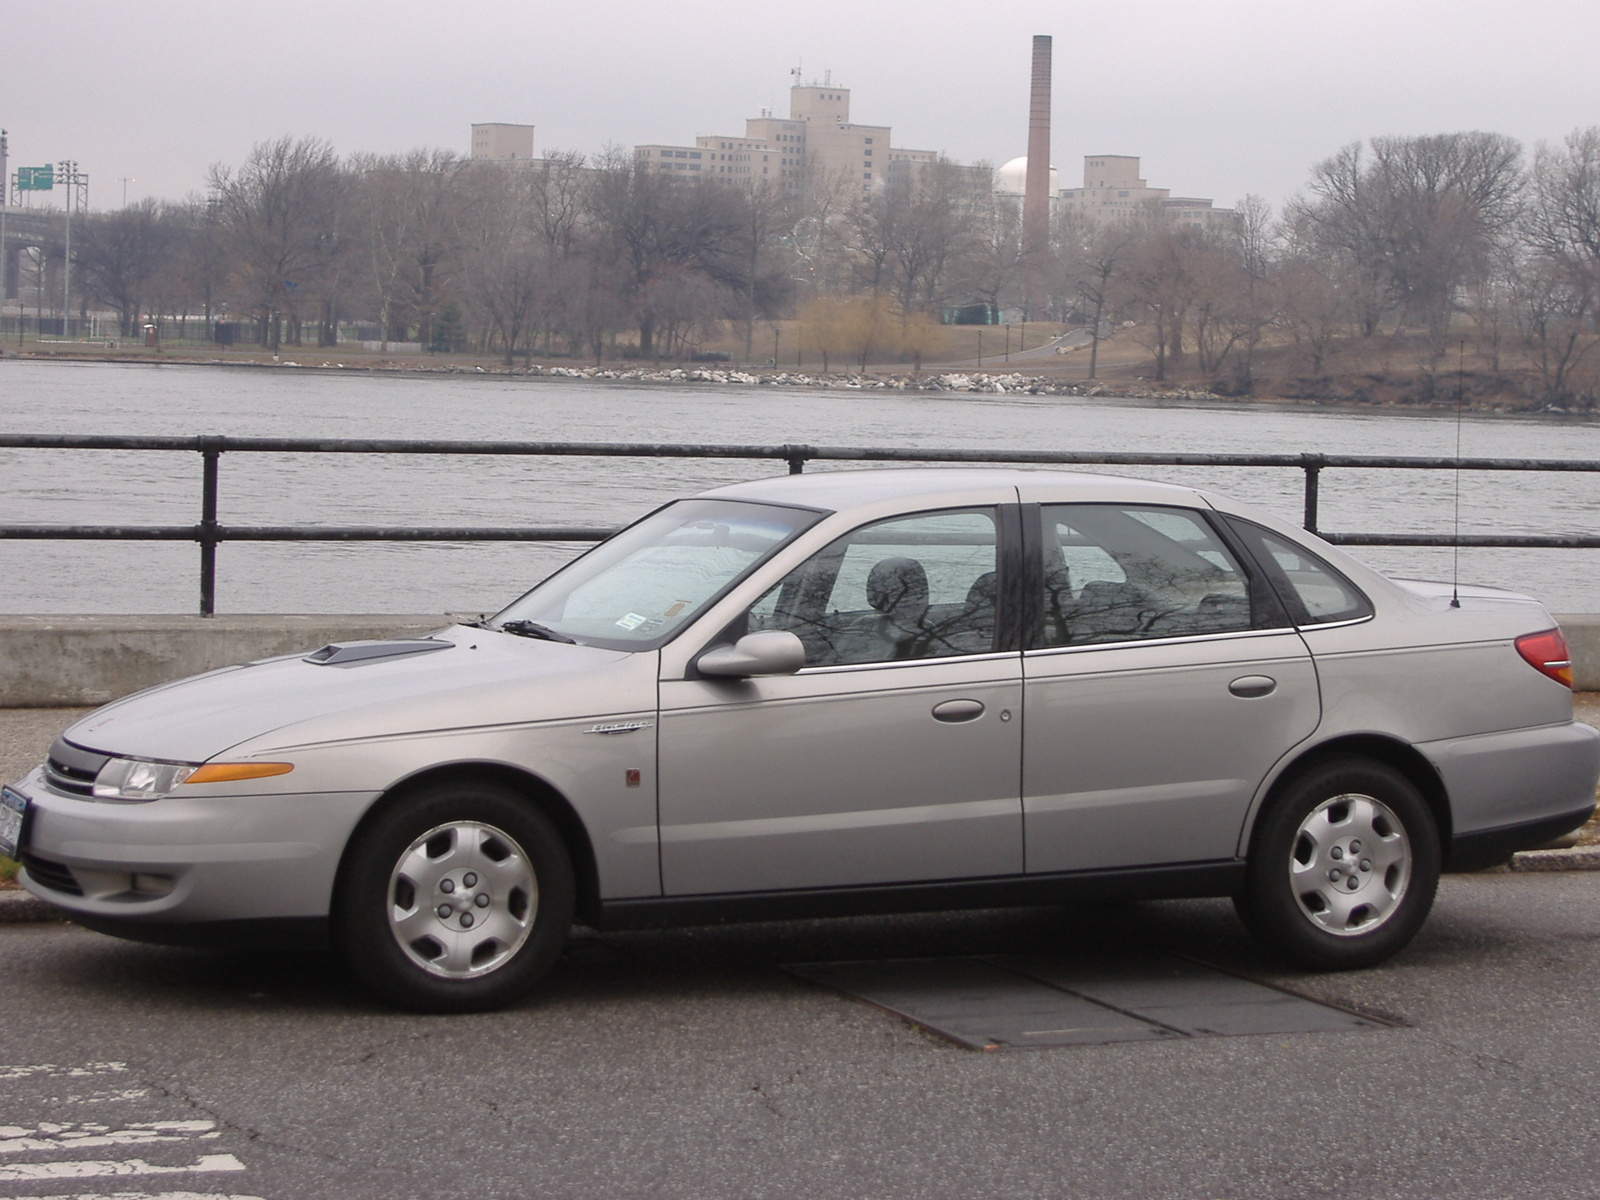 2000 saturn l series information and photos zombiedrive 2000 saturn l series 12 saturn l series 12 vanachro Gallery